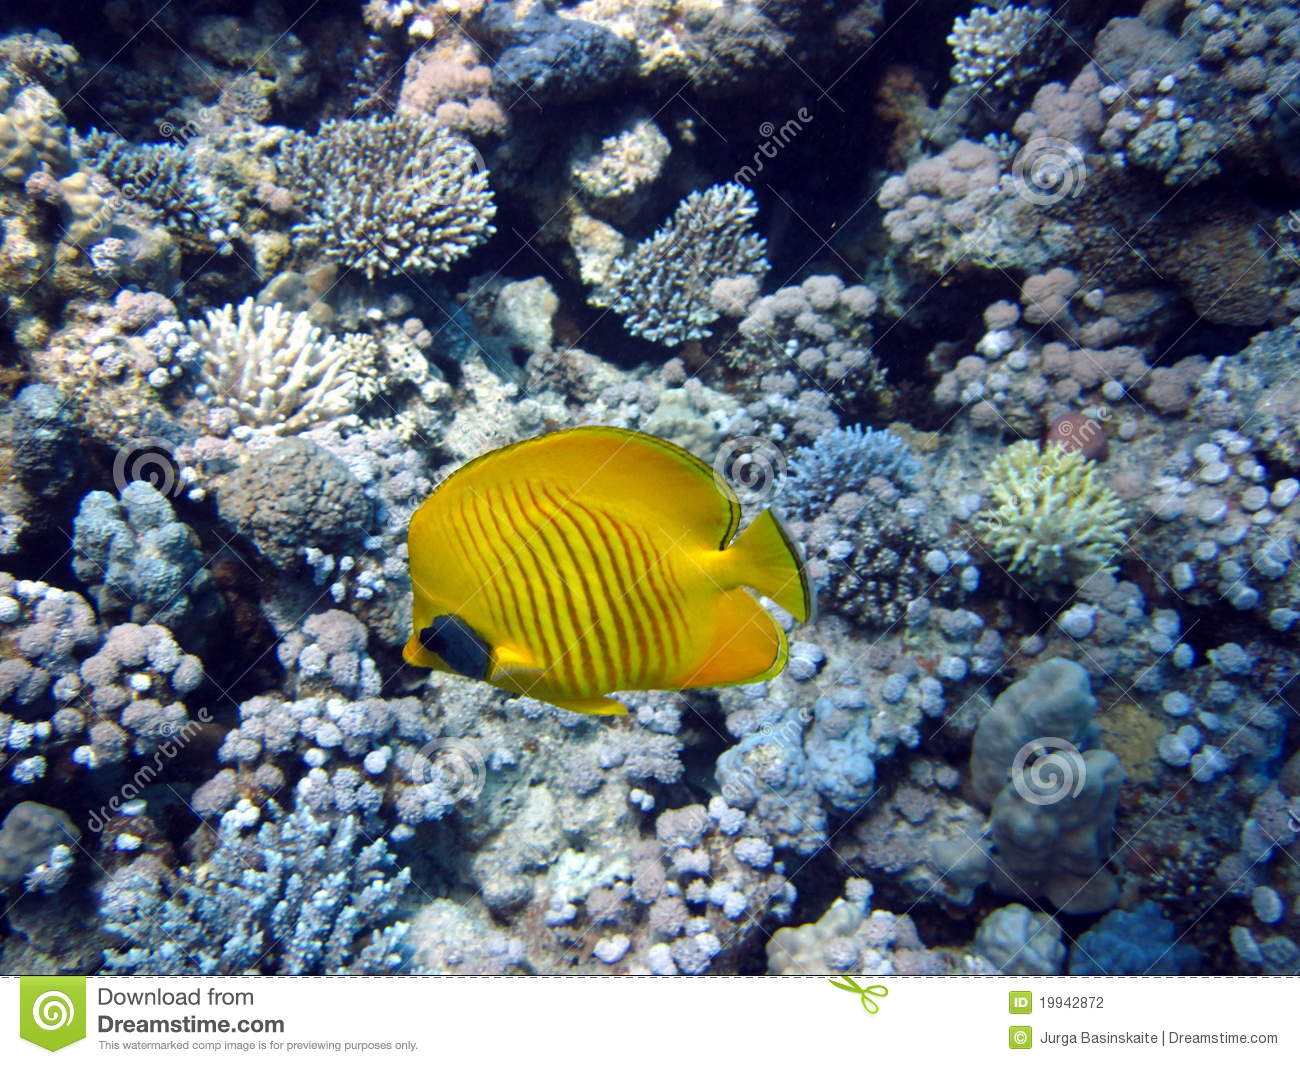 Coral reef fish yellow - photo#22